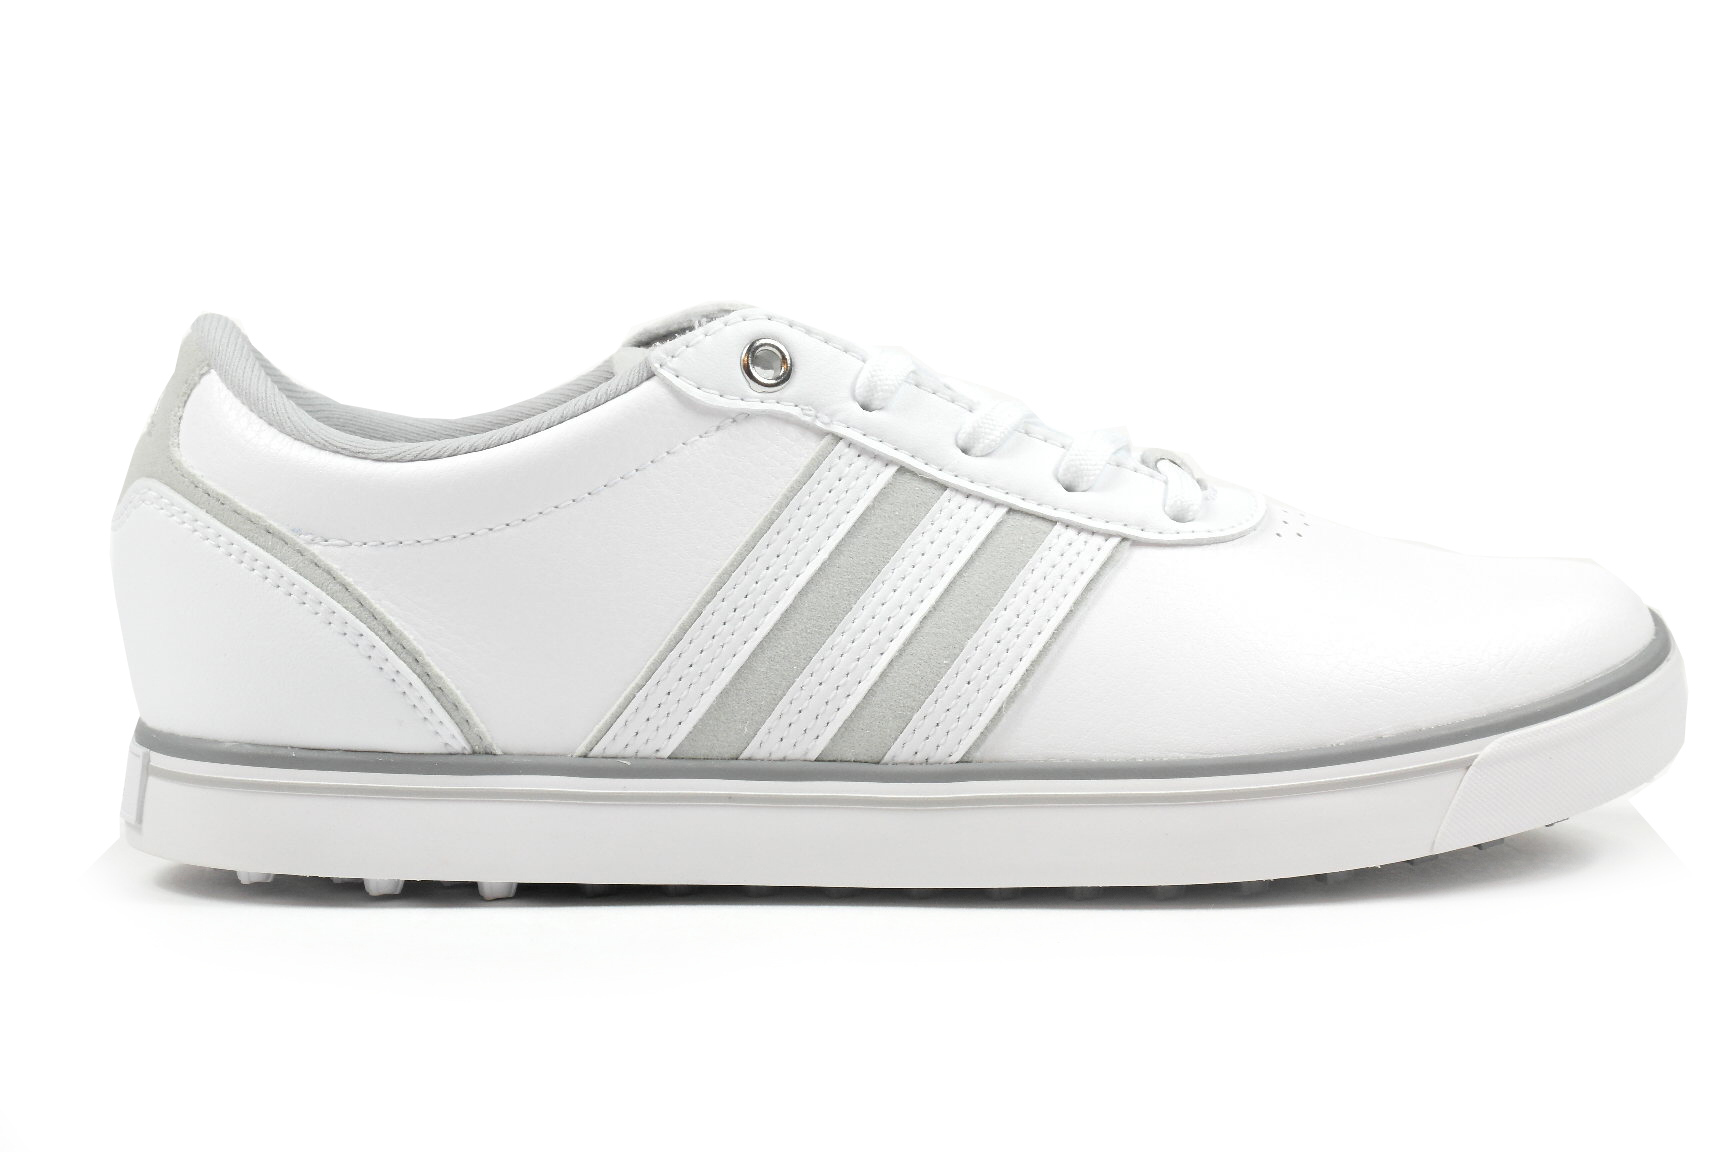 Adidas Golf Adicross V Dames golf schoenen